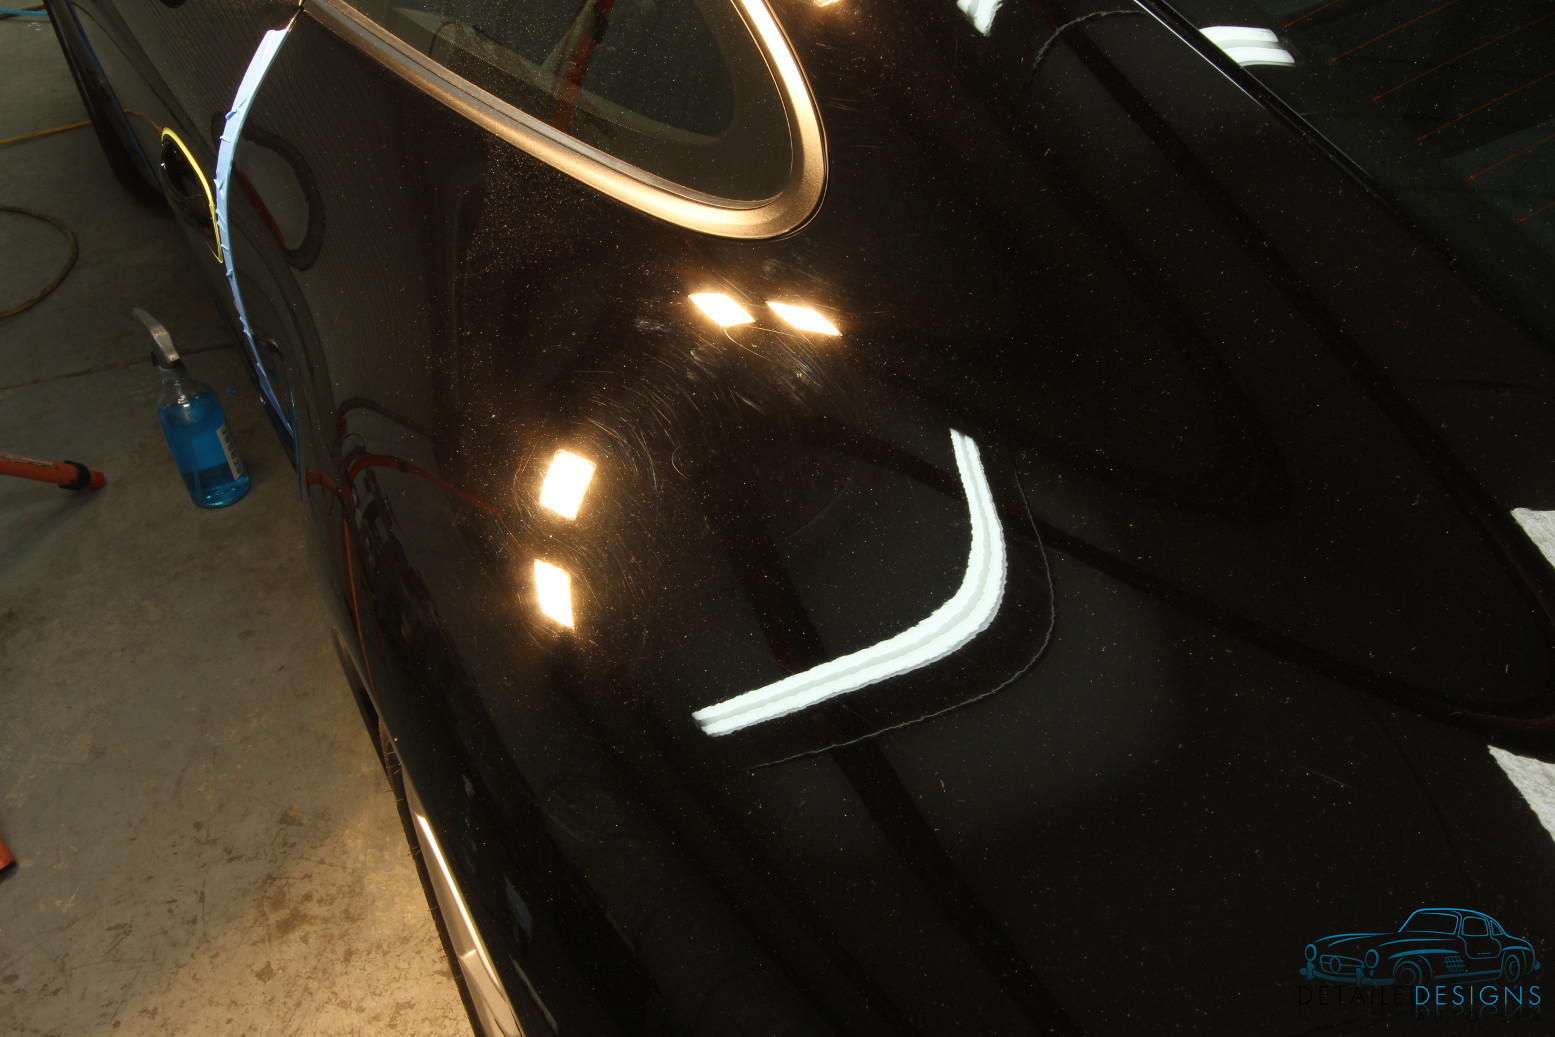 Porsche car paint scratches